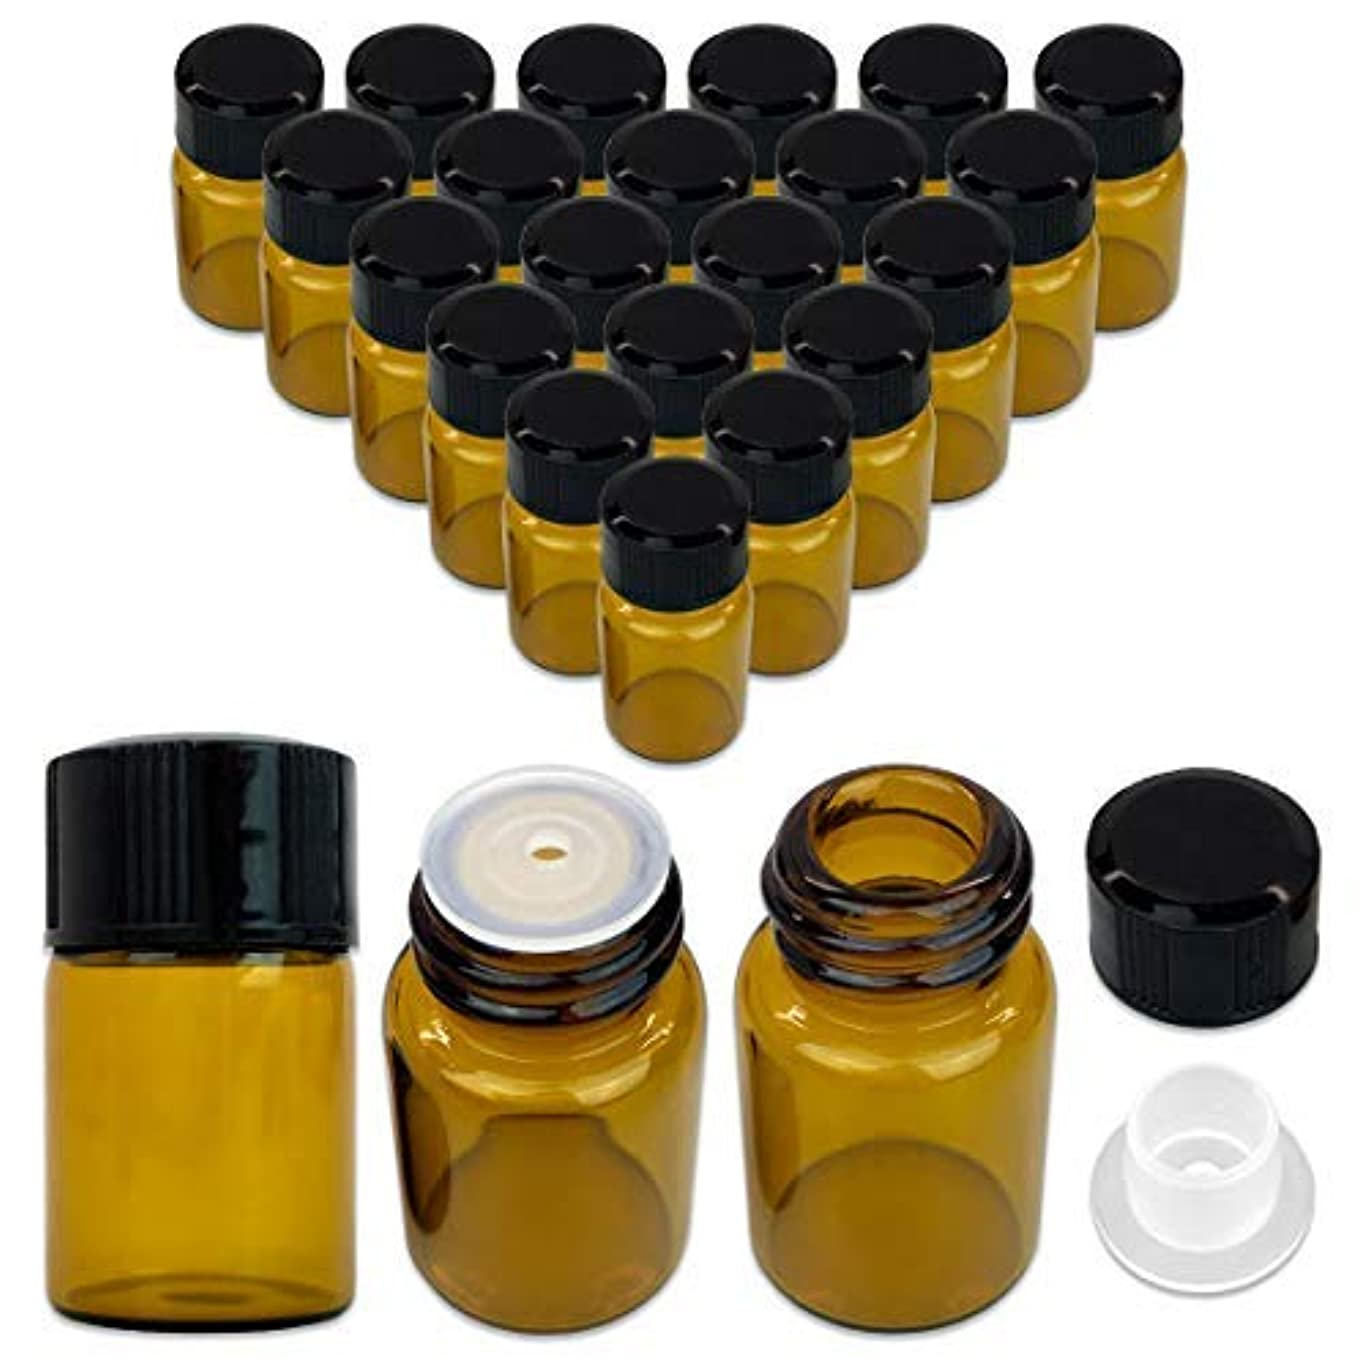 不均一書き込み石炭24 Packs Beauticom 2ML Amber Glass Vial for Essential Oils, Aromatherapy, Fragrance, Serums, Spritzes, with Orifice...